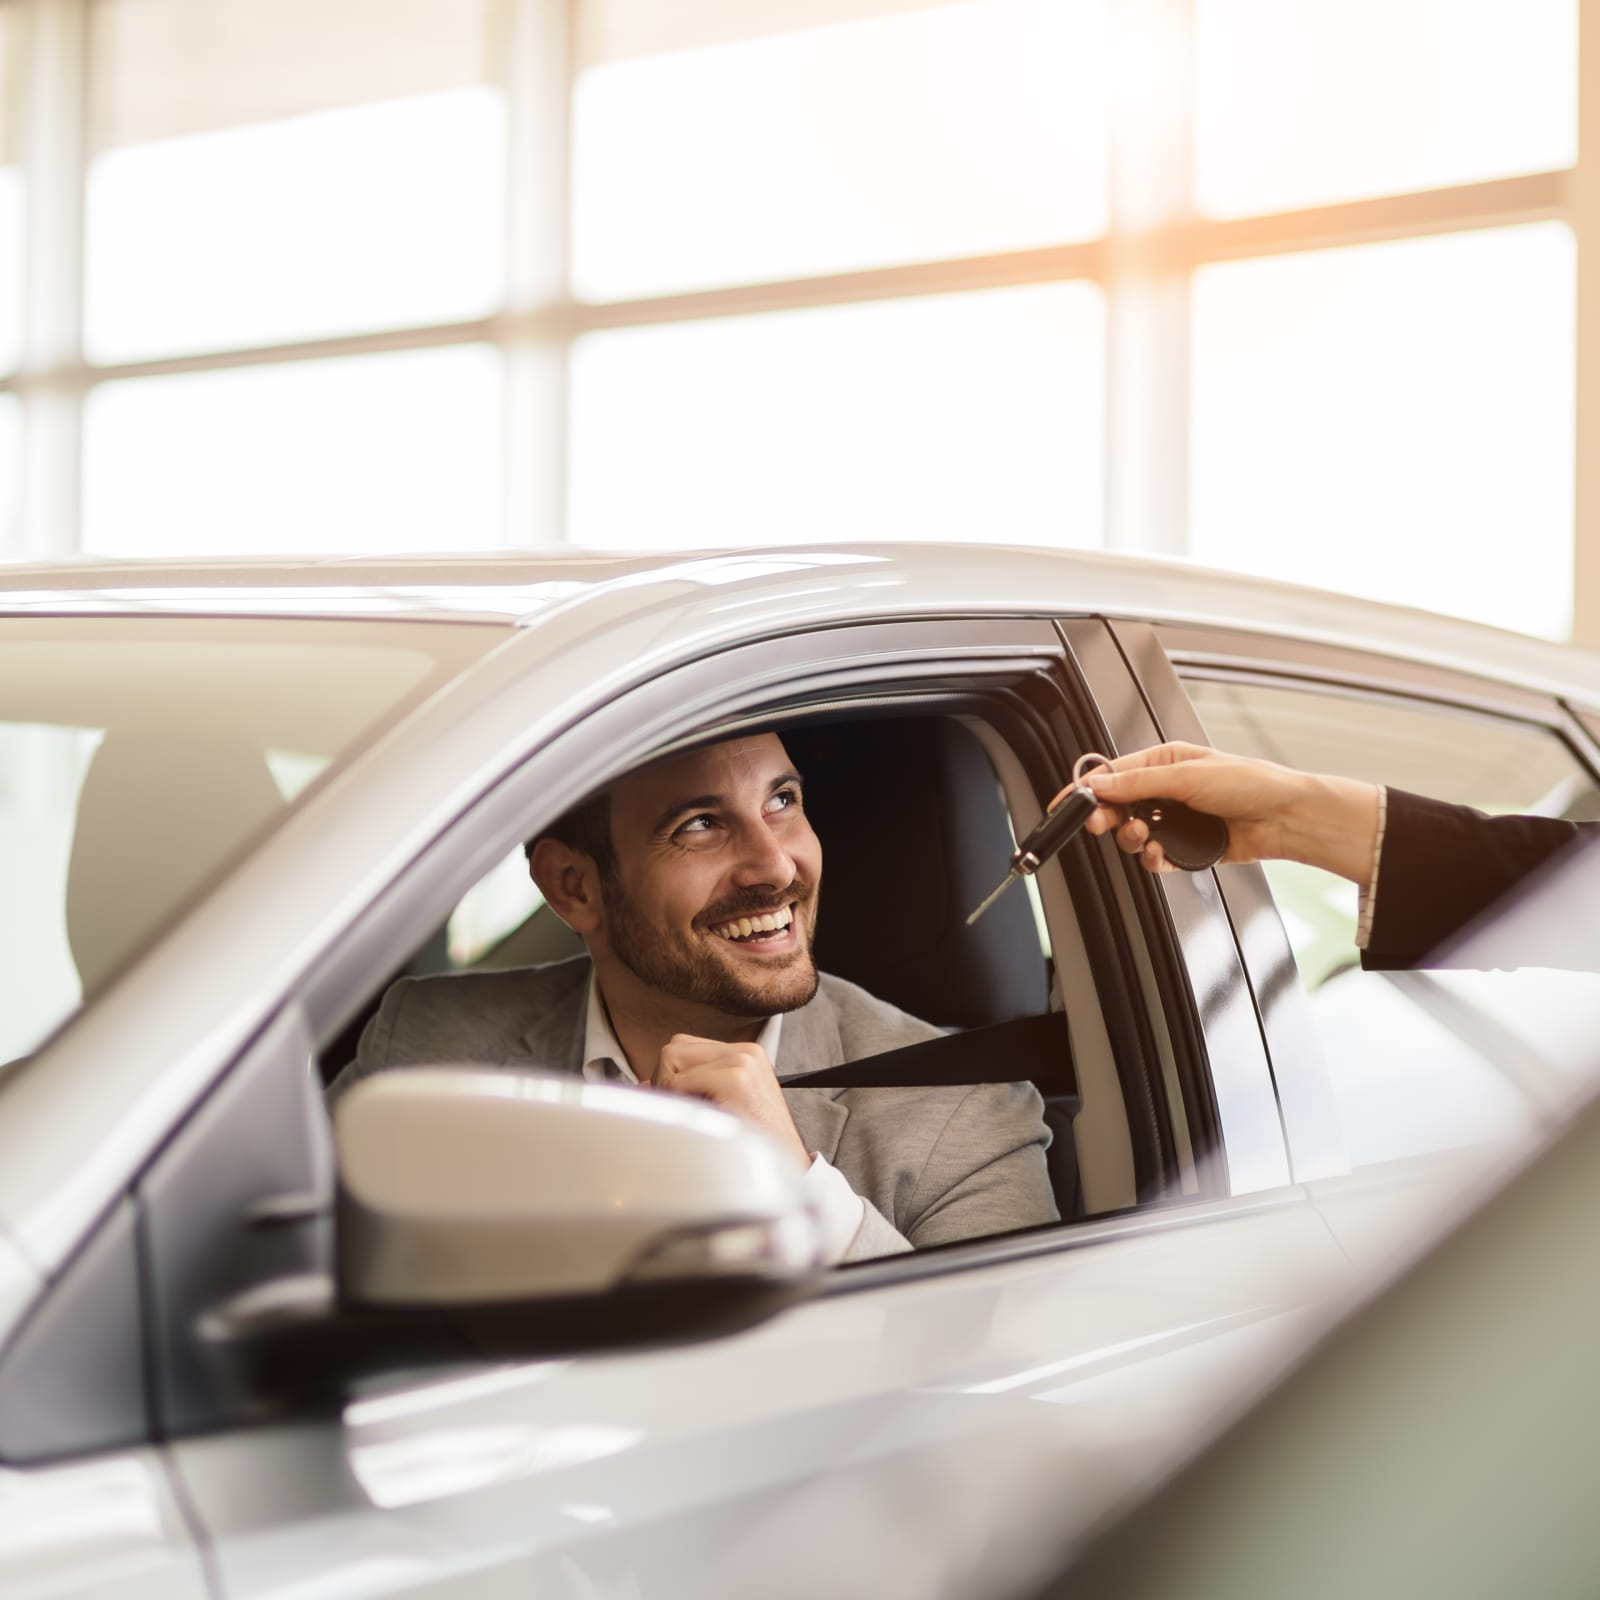 Used Car Loan Rates 72 Months Unique Average Auto Loan Interest Rates 2018 Facts Figures Valuepenguin